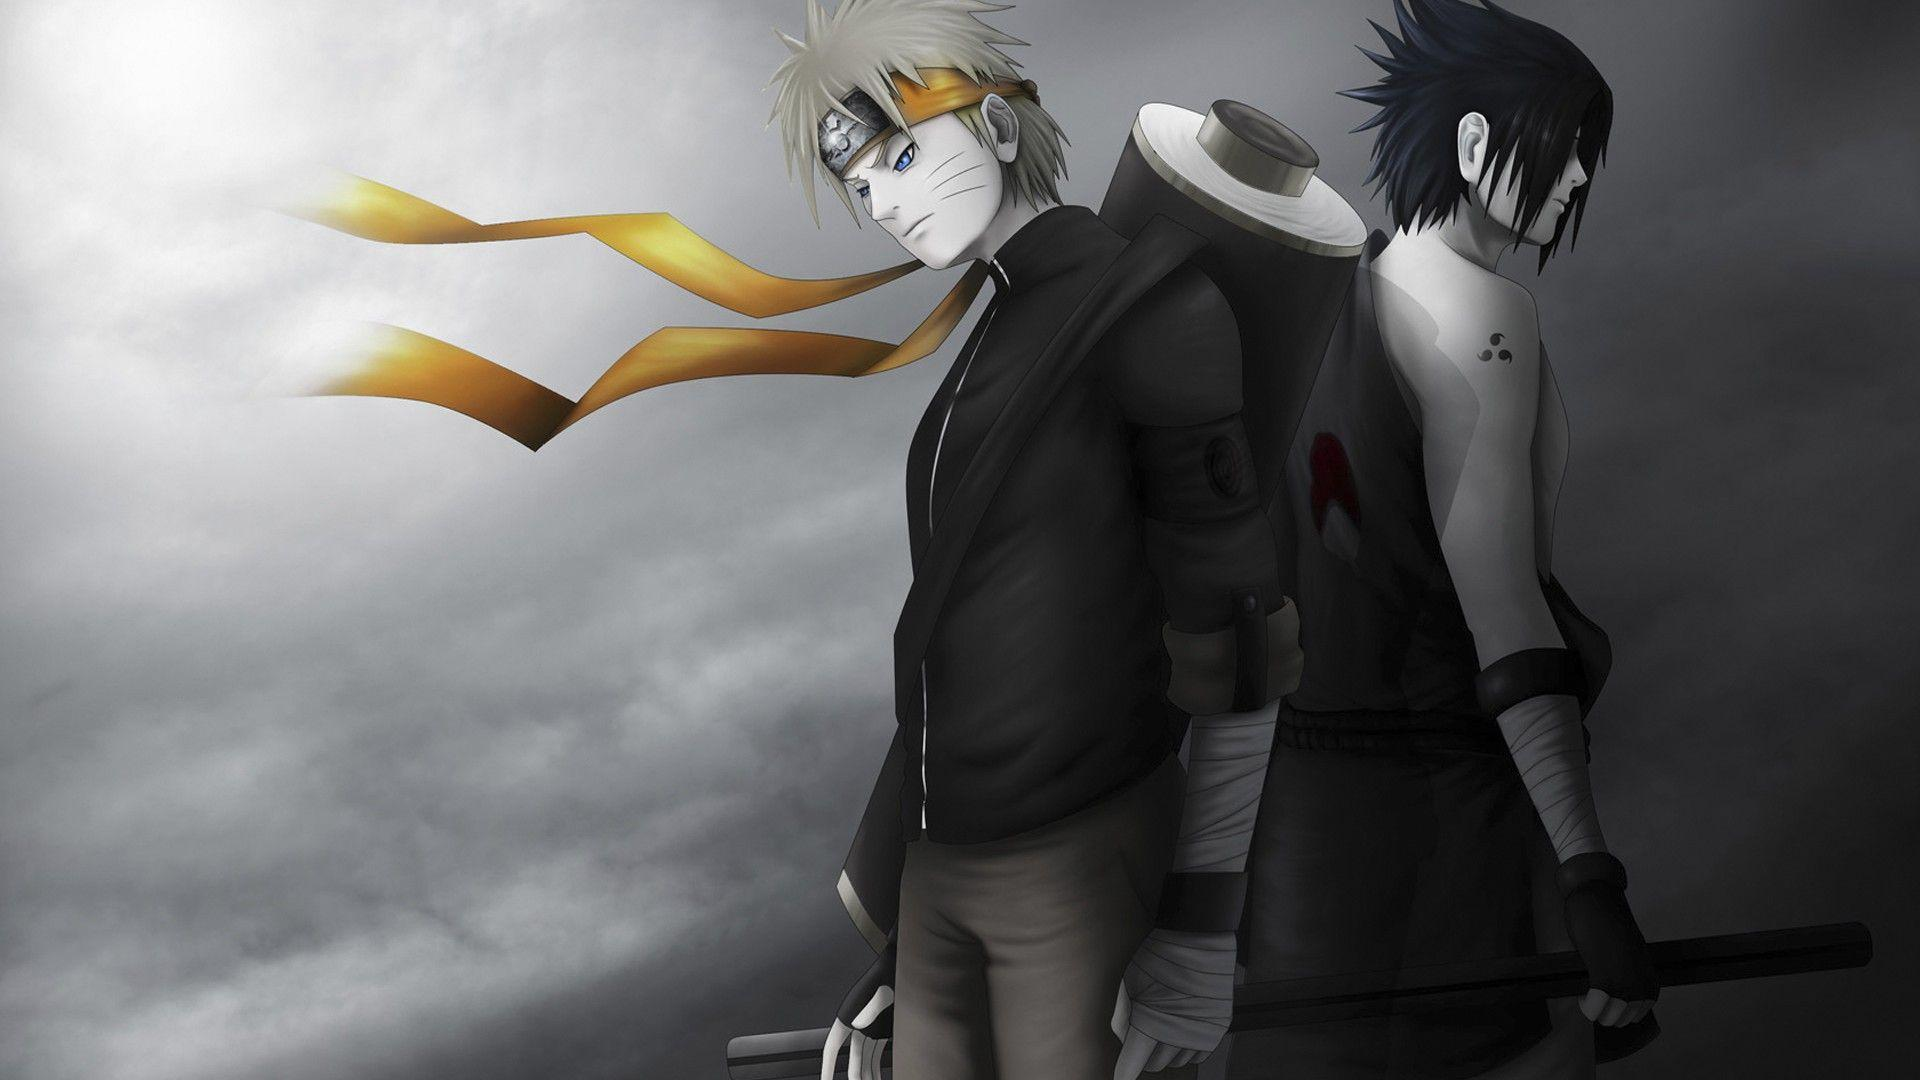 naruto sasuke anime wallpaper hd naruto cartoon hd free wallpapers